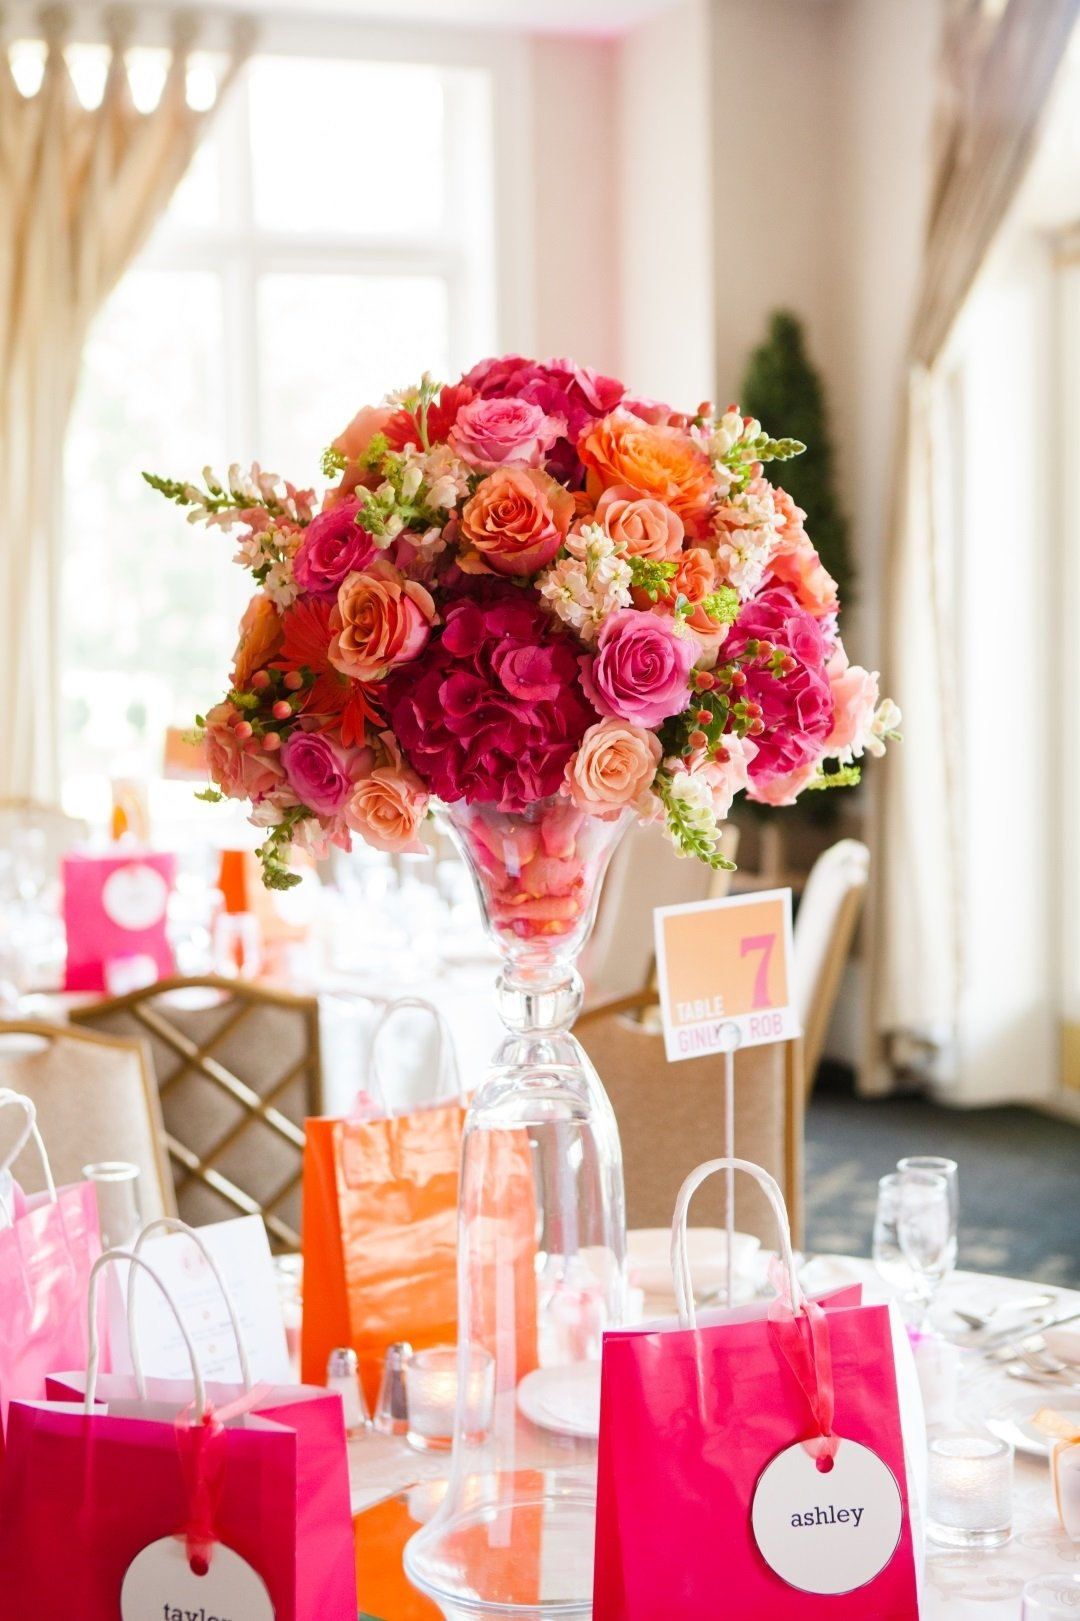 10 Attractive Pink And Orange Wedding Ideas best pink and orange wedding ideas contemporary styles ideas